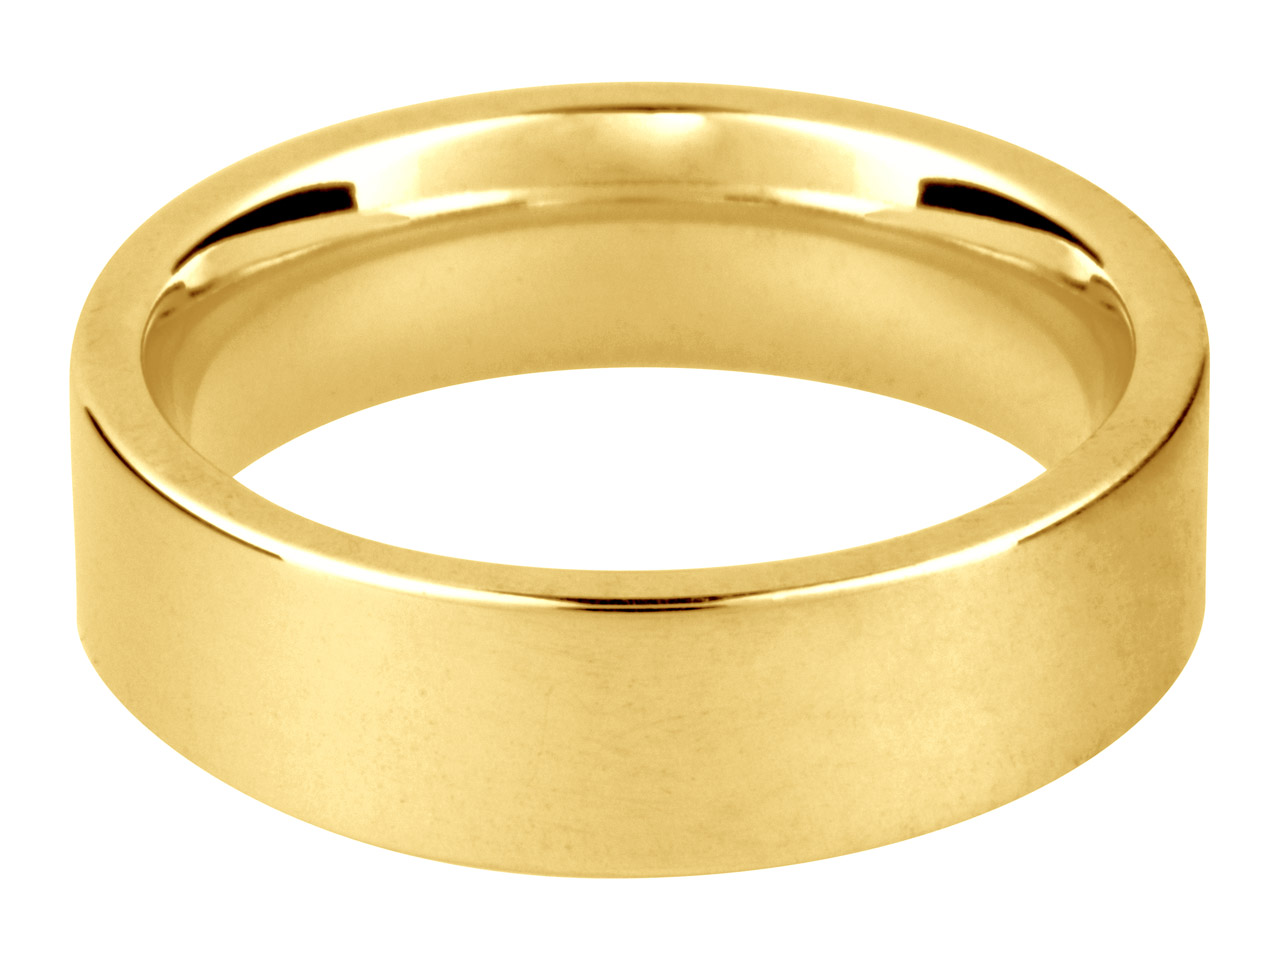 9ct Yellow Easy Fit Wedding Ring   4.0mm U 4.7gms Medium Weight       Hallmarked Wall Thickness 1.64mm